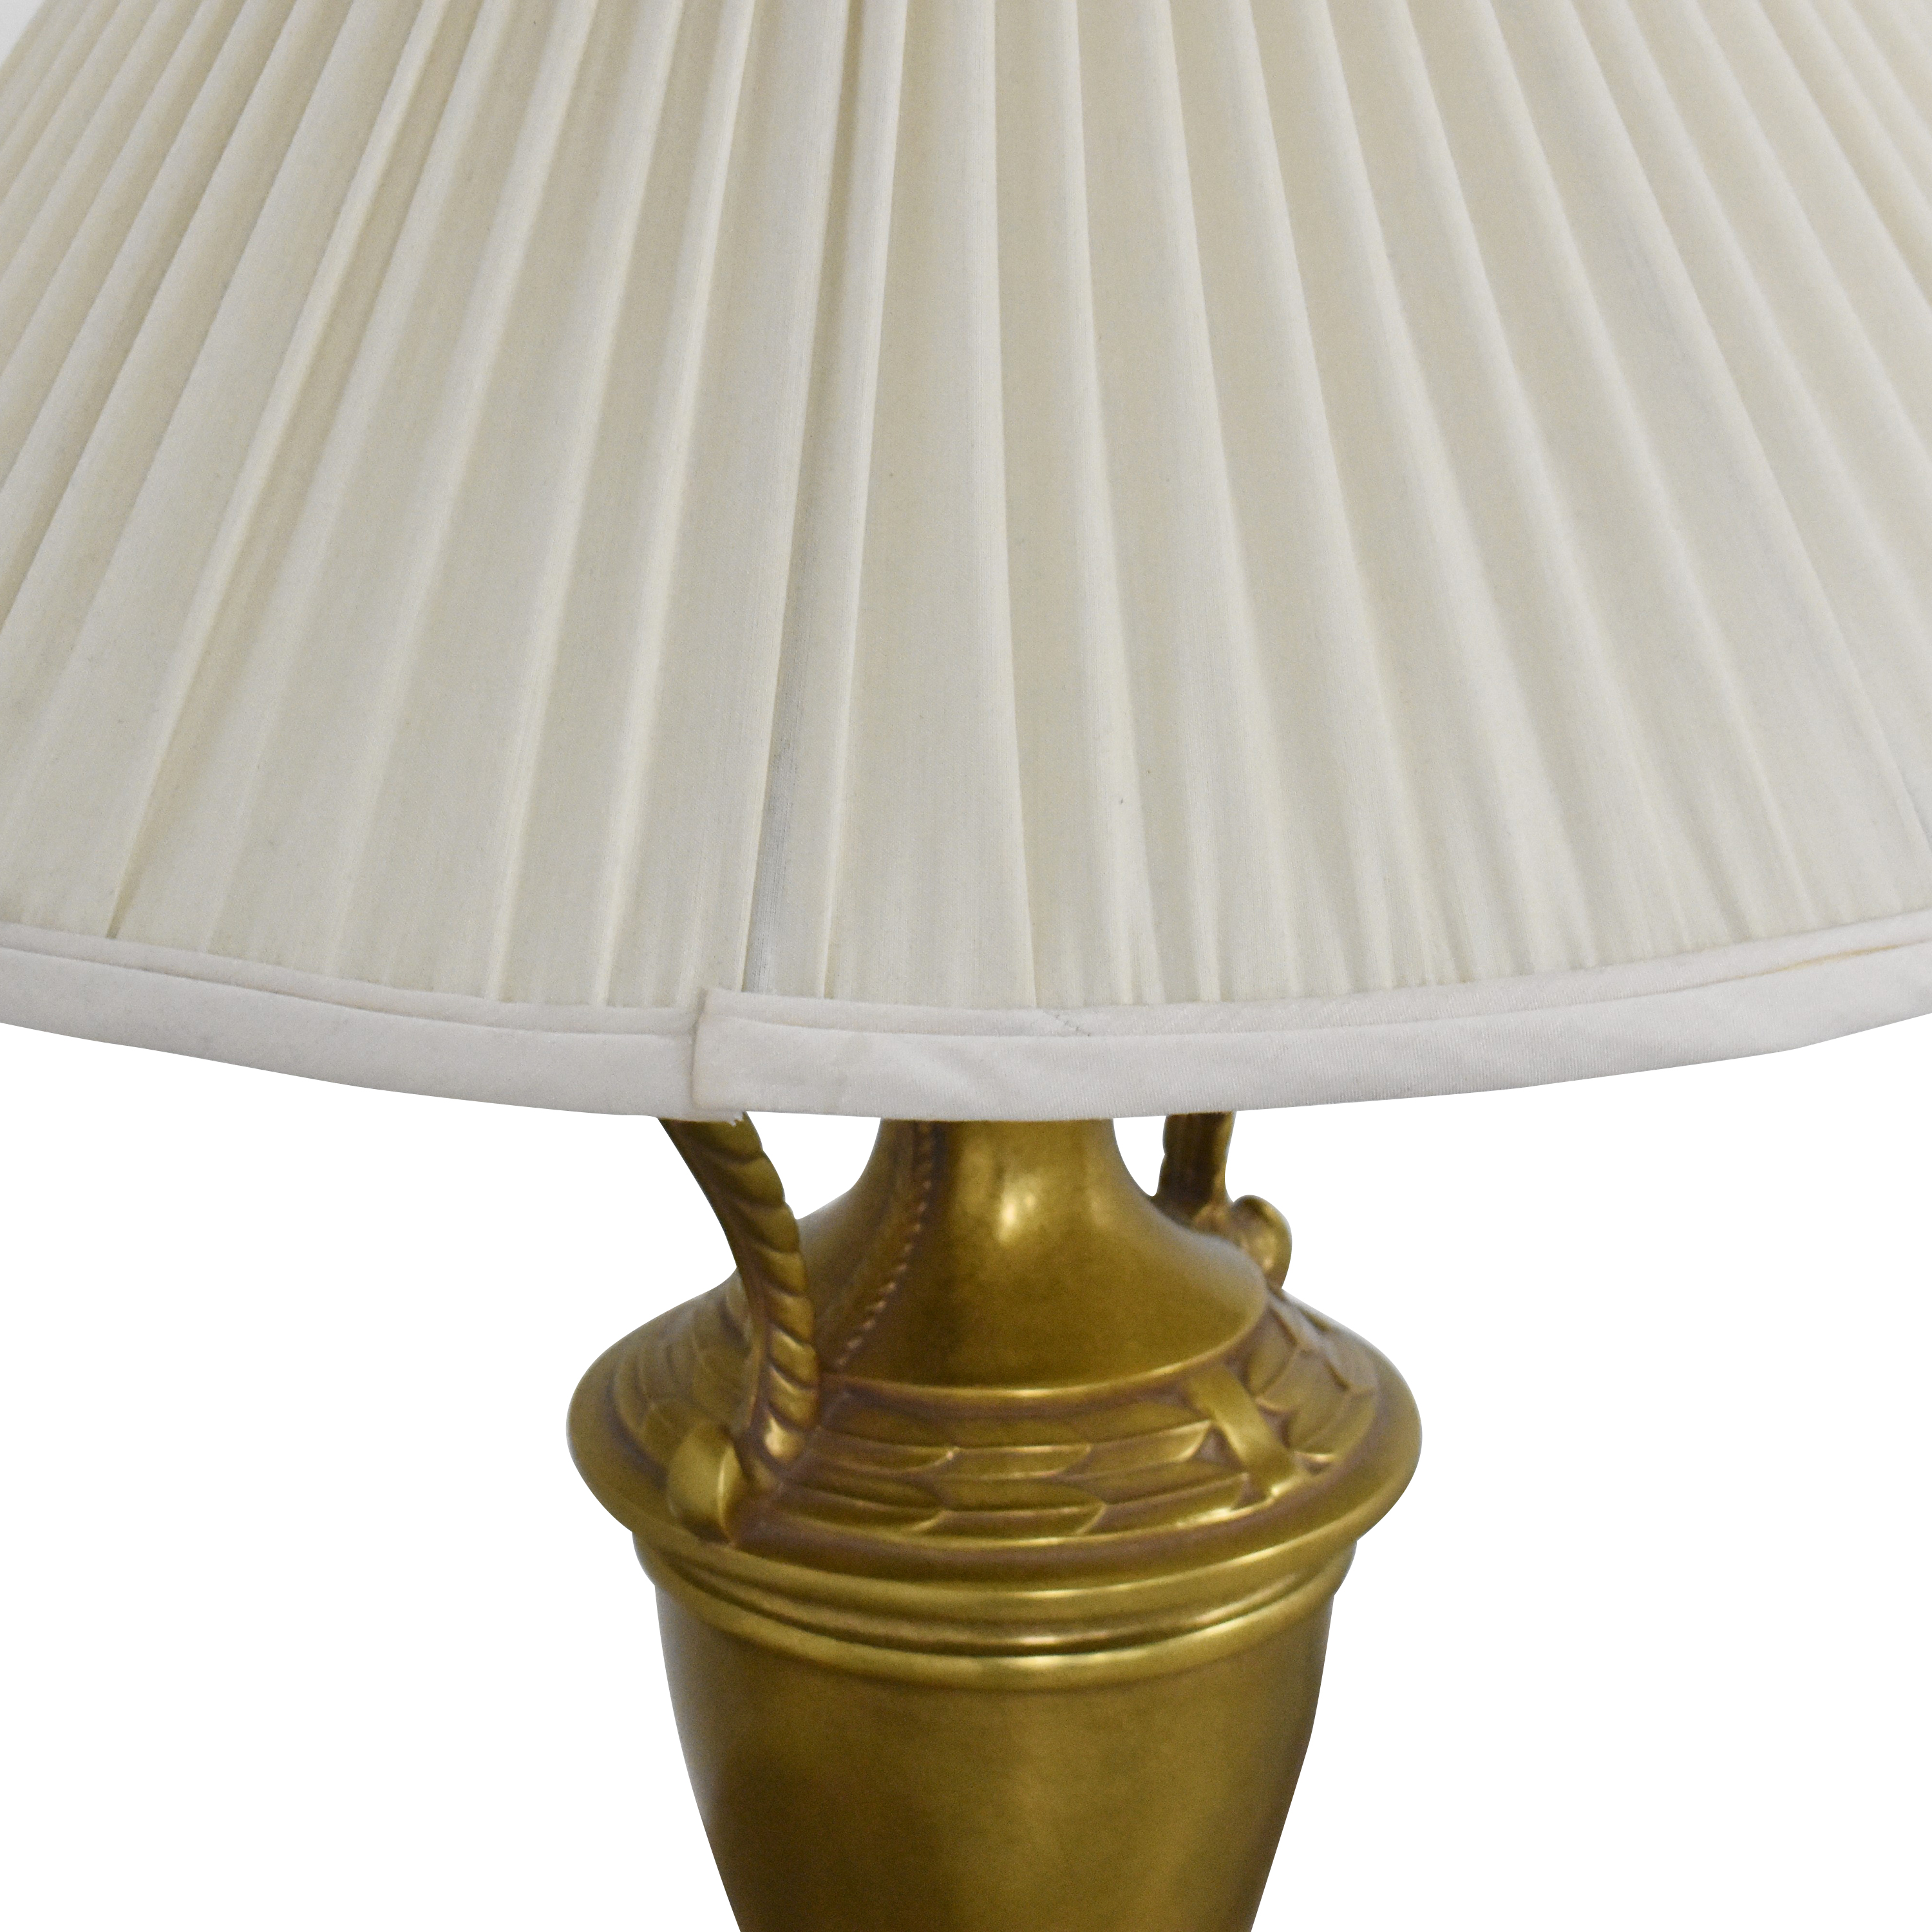 Ethan Allen Urn Table Lamp / Lamps